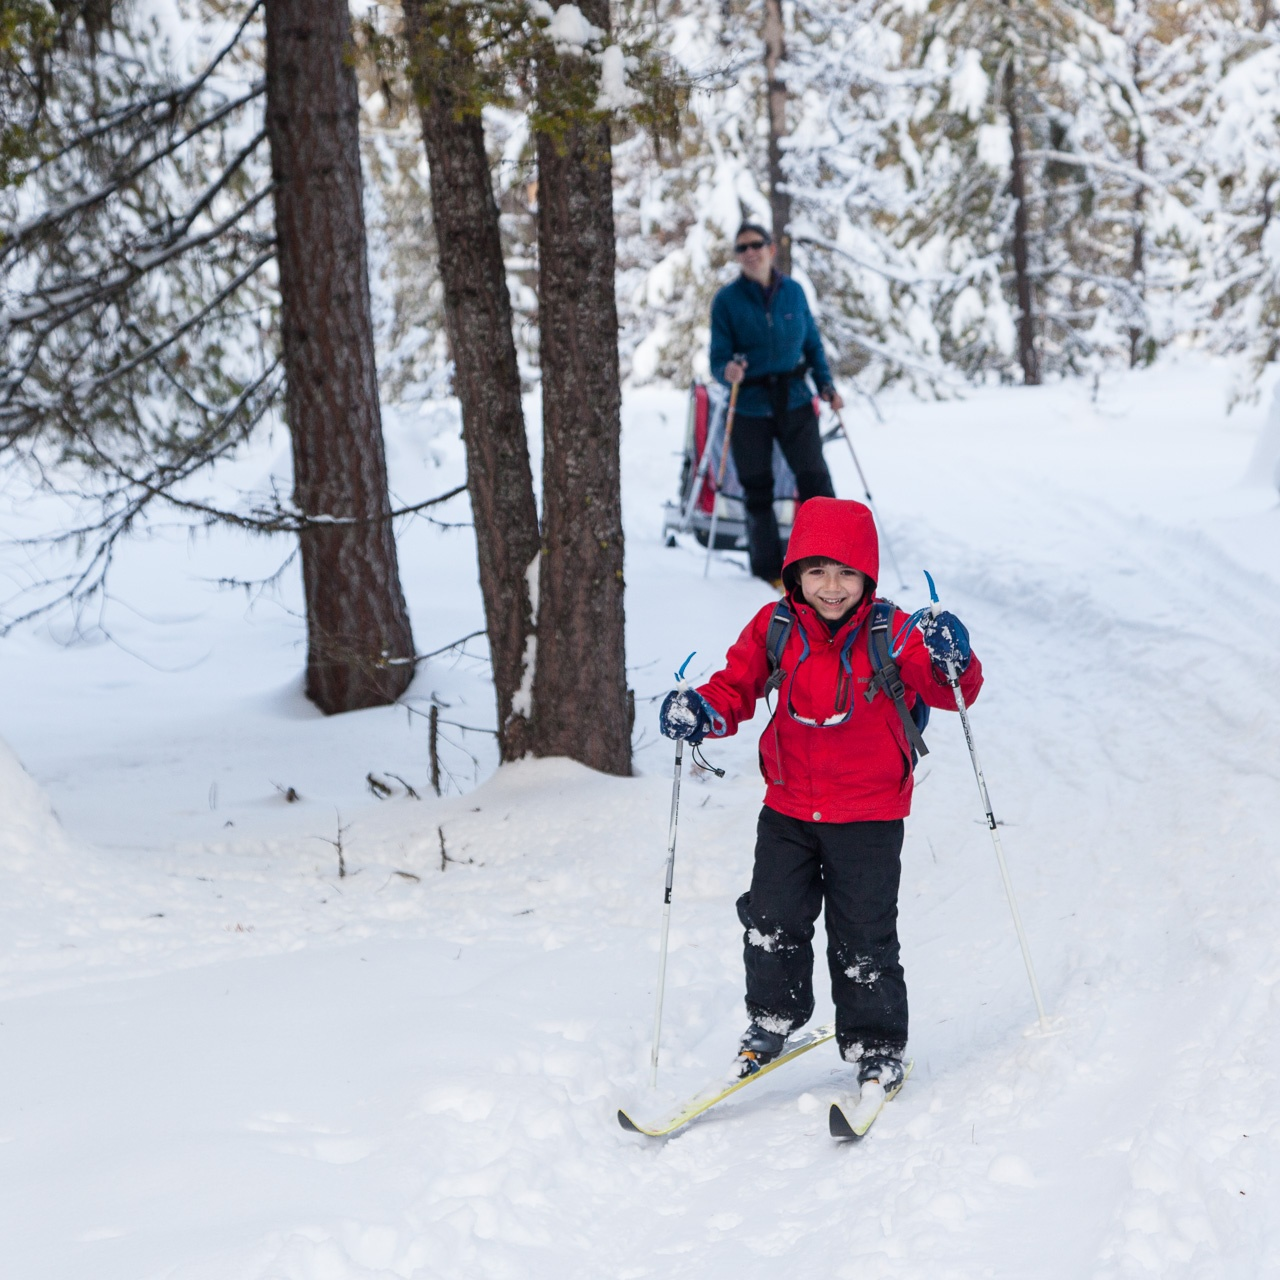 Smiling kid and mother cross-country skiing.